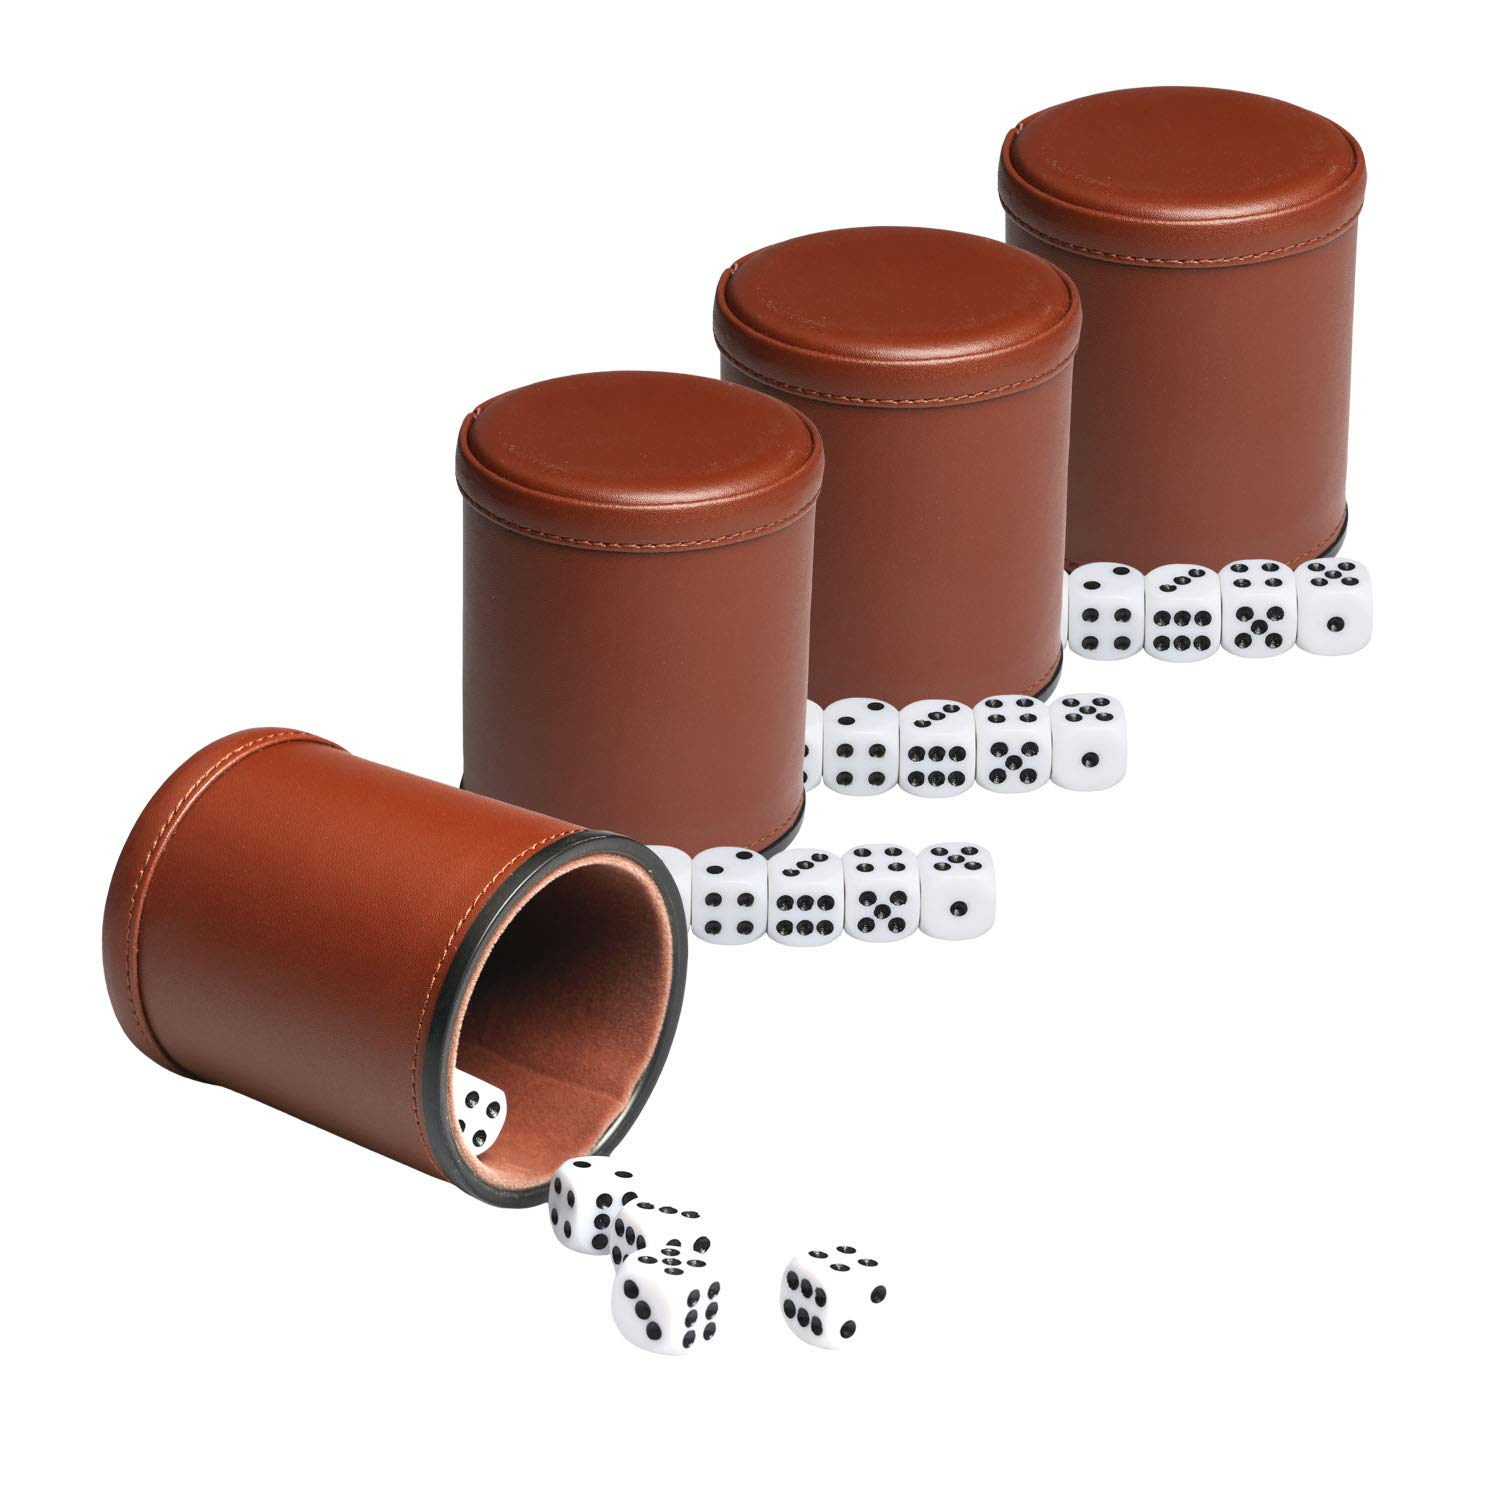 Leather Dice Cup Set Felt Lining Quiet Shaker with 5 Dot Dices for Farkle Yahtzee Games,4 Pack (Brown) by RERIVER